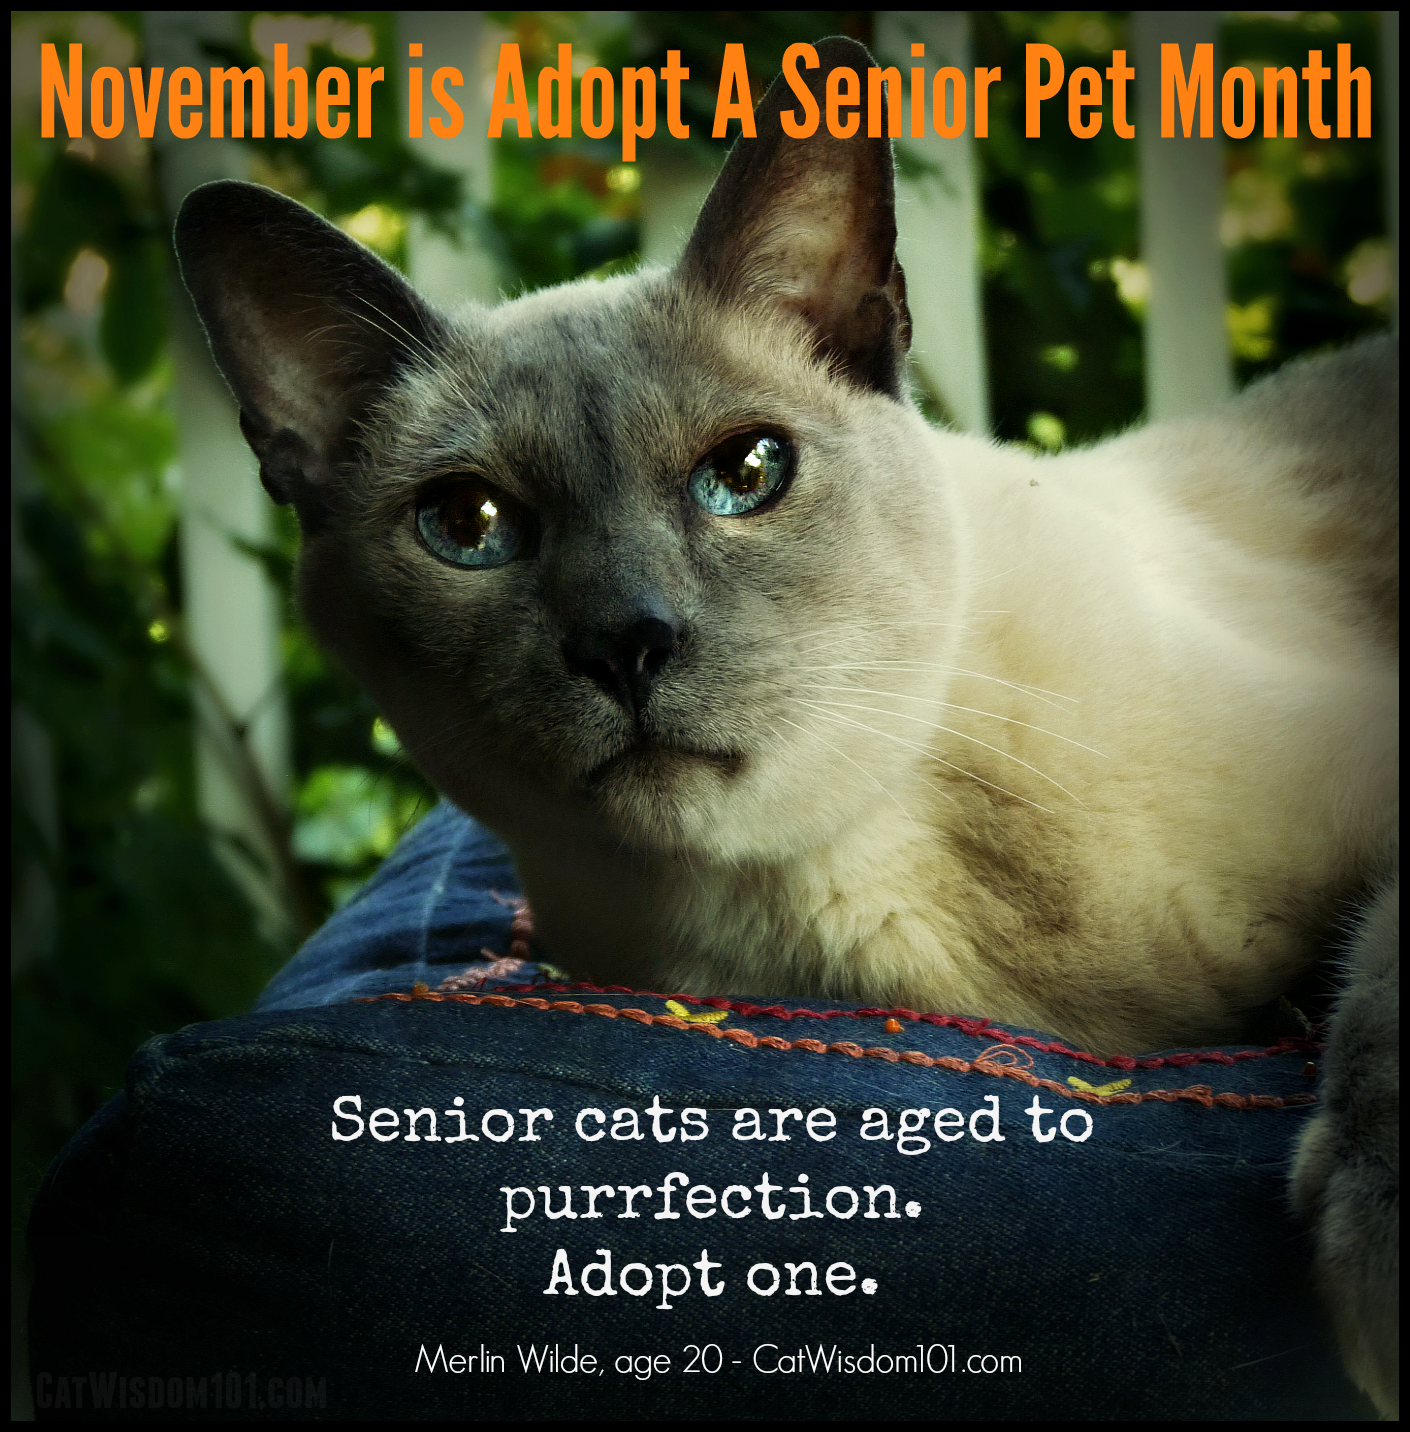 Mondays With Merlin ASPCA Adopt A Senior Pet Month Invite